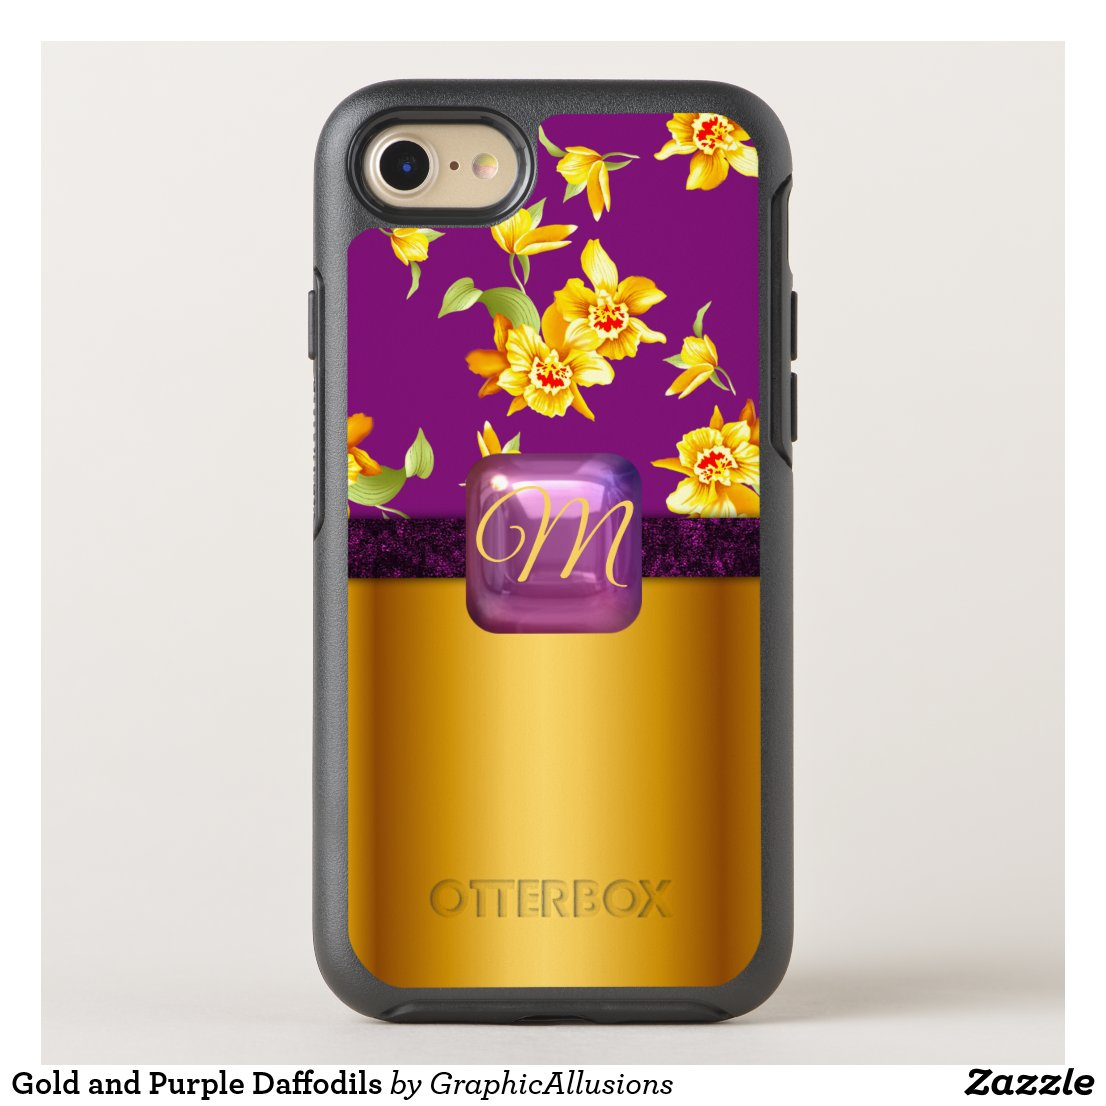 Gold and Purple Daffodils OtterBox iPhone Case